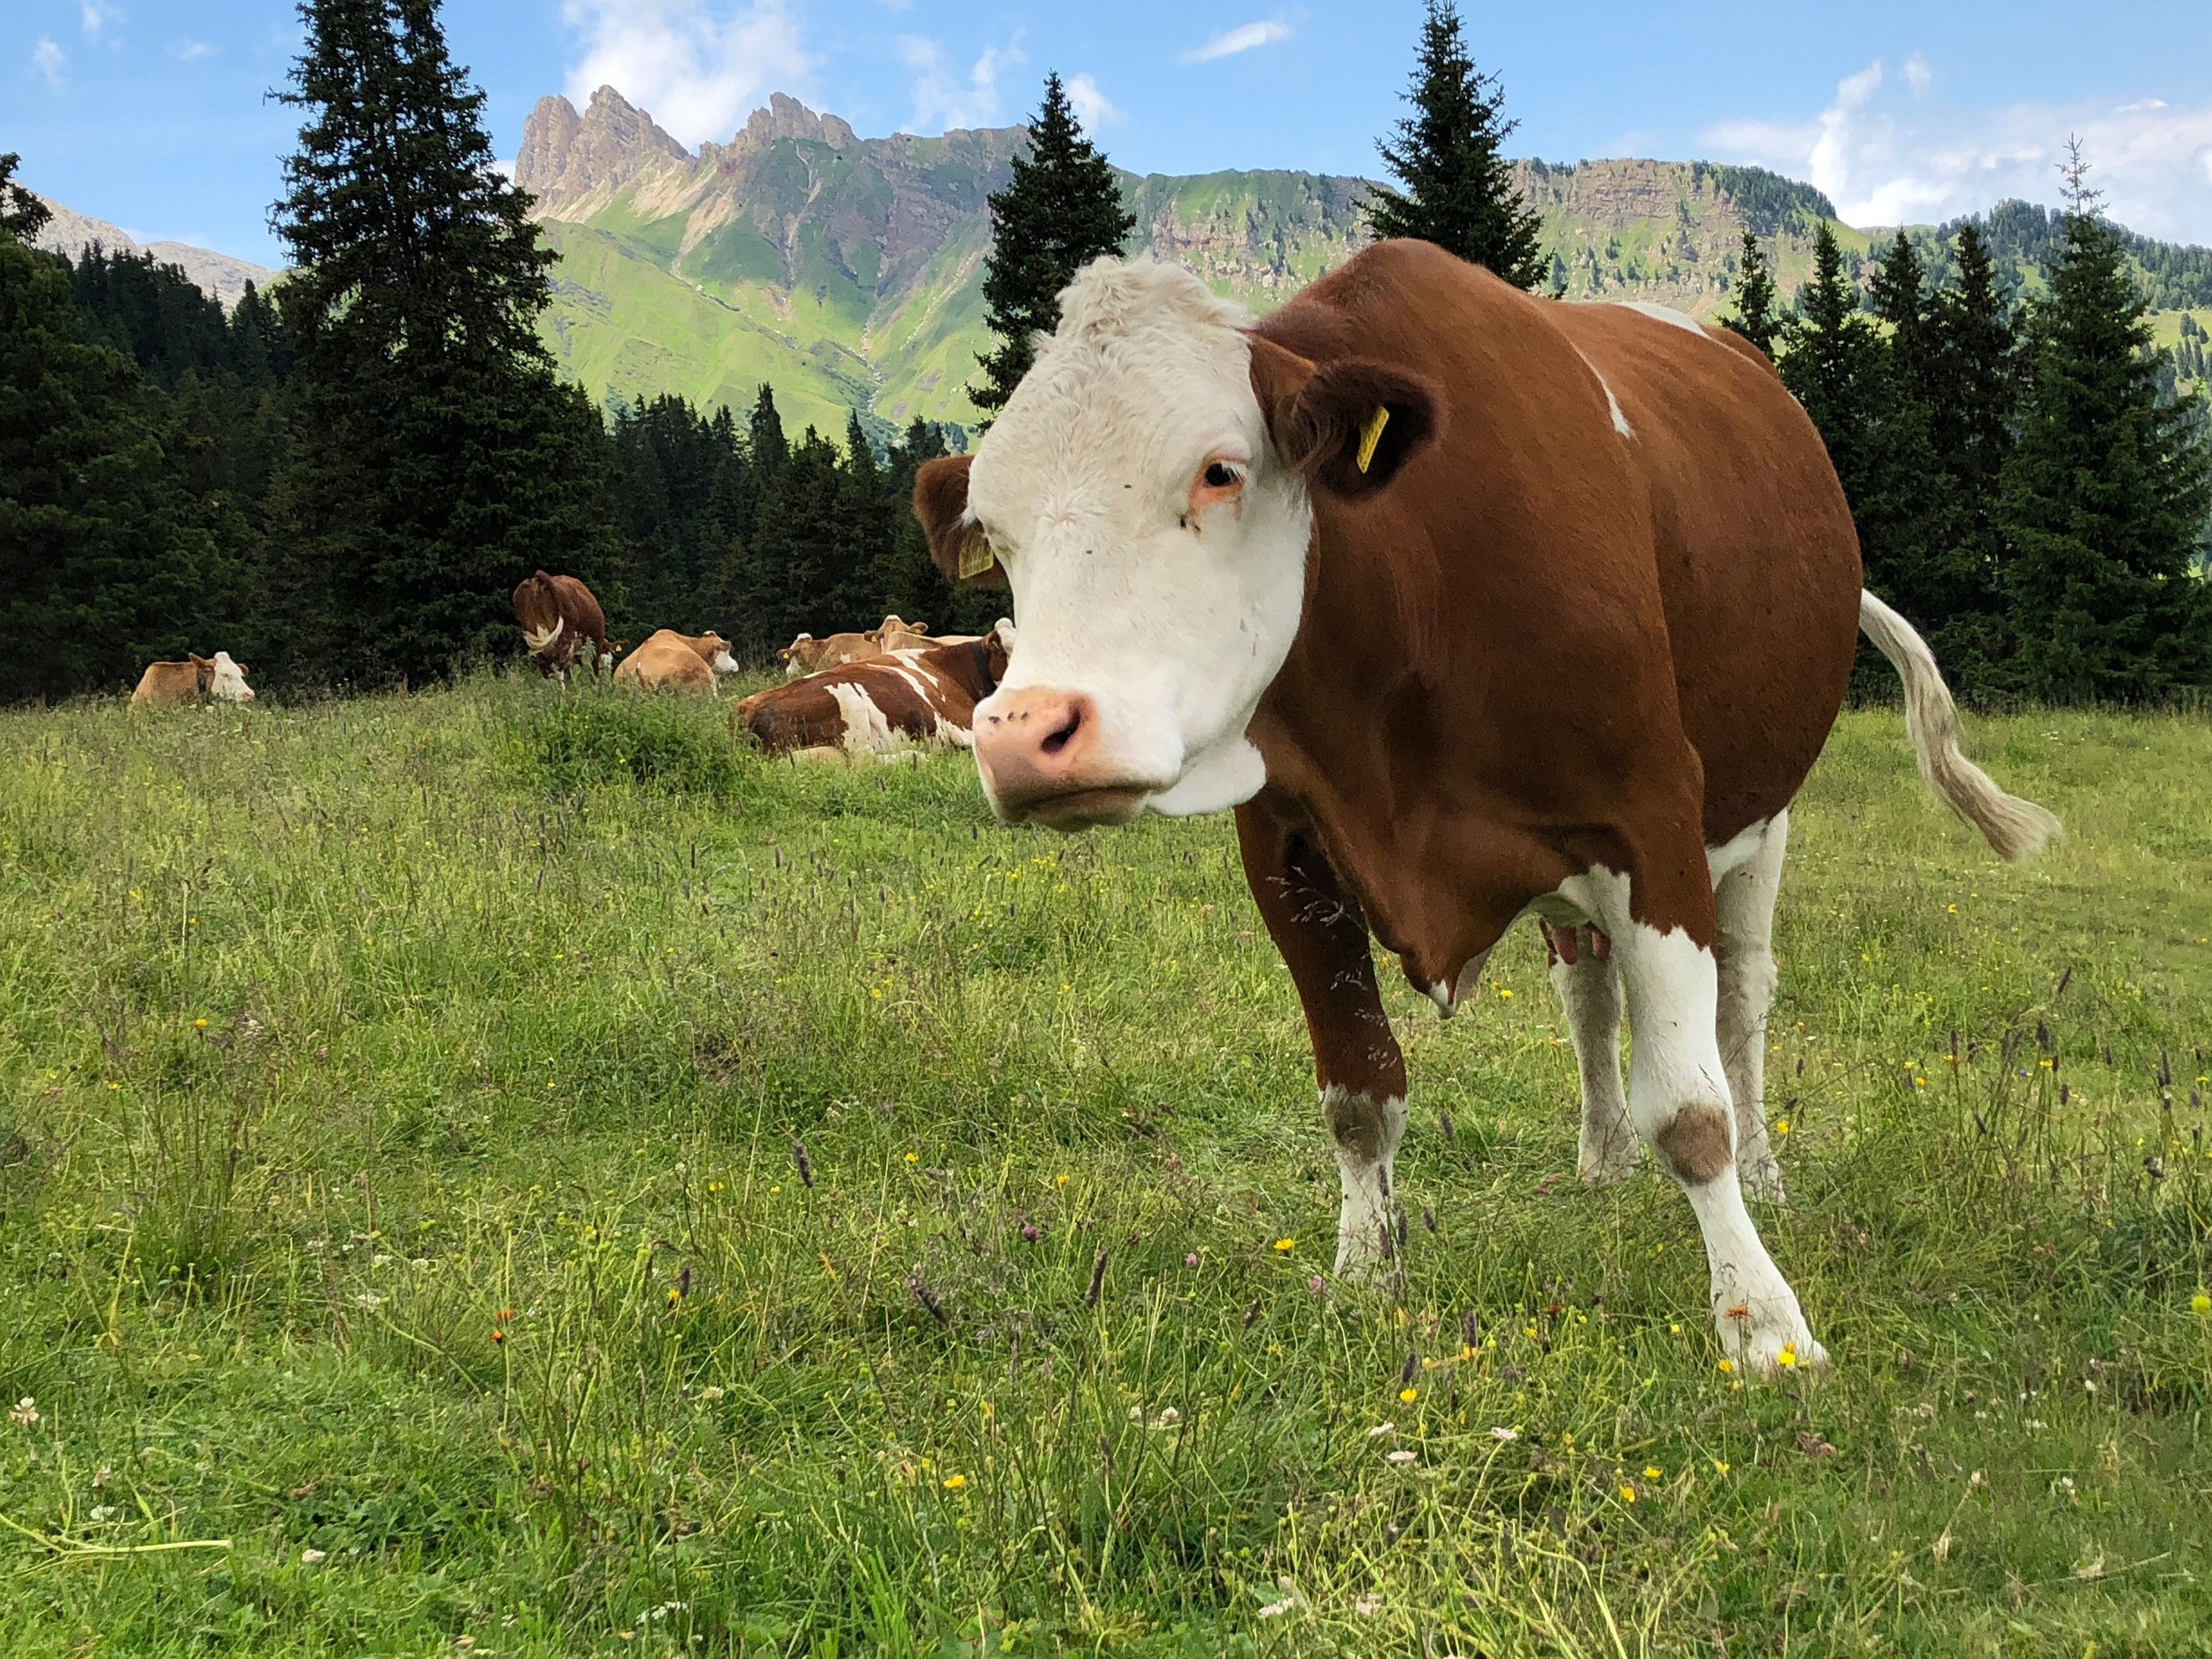 To get the benefits of collagen, it's really important that your supplement comes from grass-fed or pasture-raised animals!